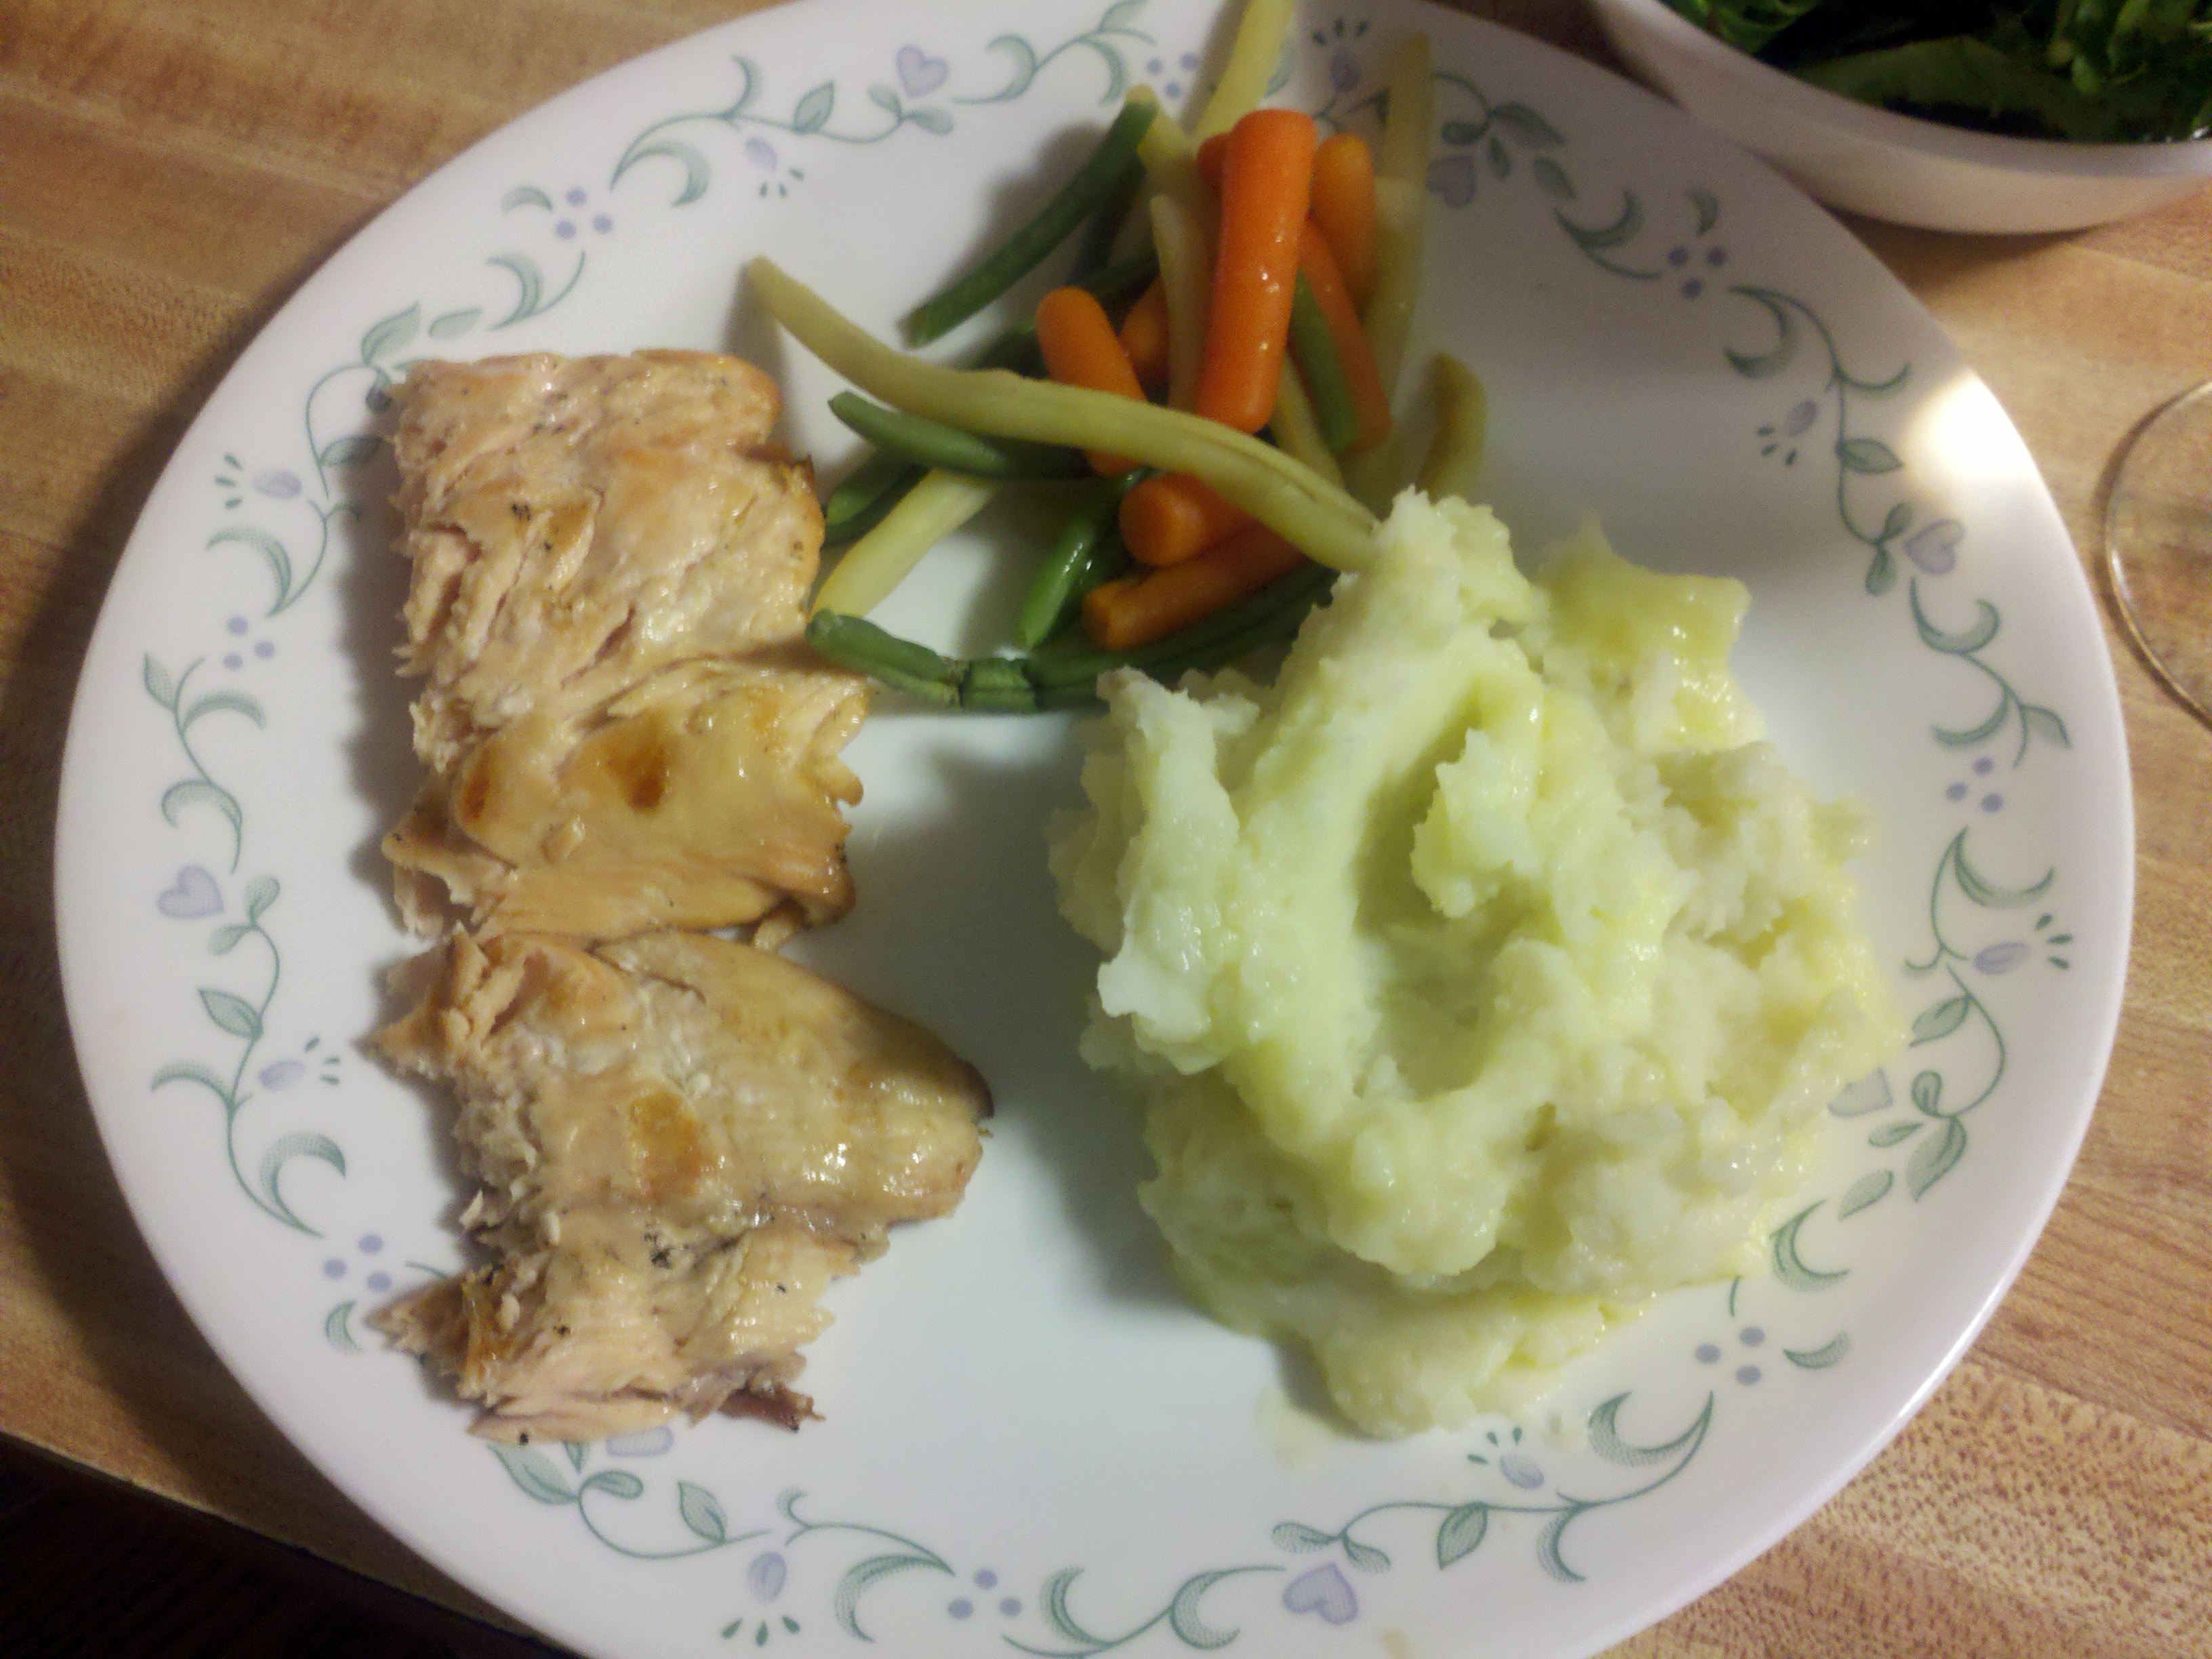 Milford,  NH :: salmon on the grill, mashed potatoes,  beans and carrots, salad, and white wine.